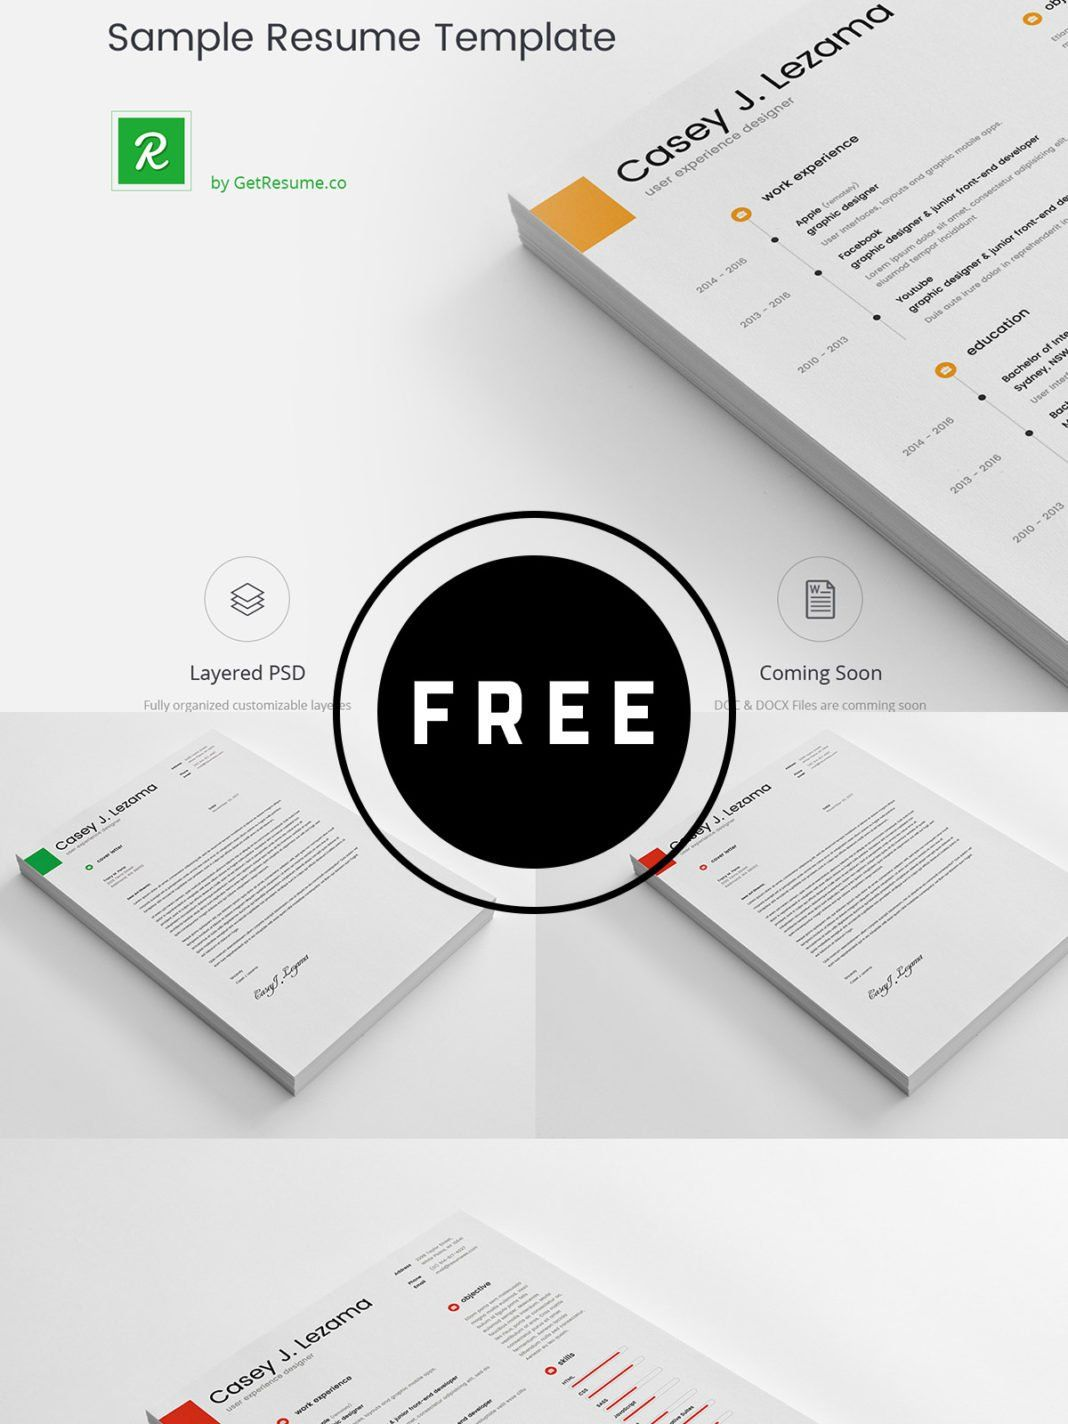 98 Awesome Free Resume Templates for 2019 in 2020 Sample